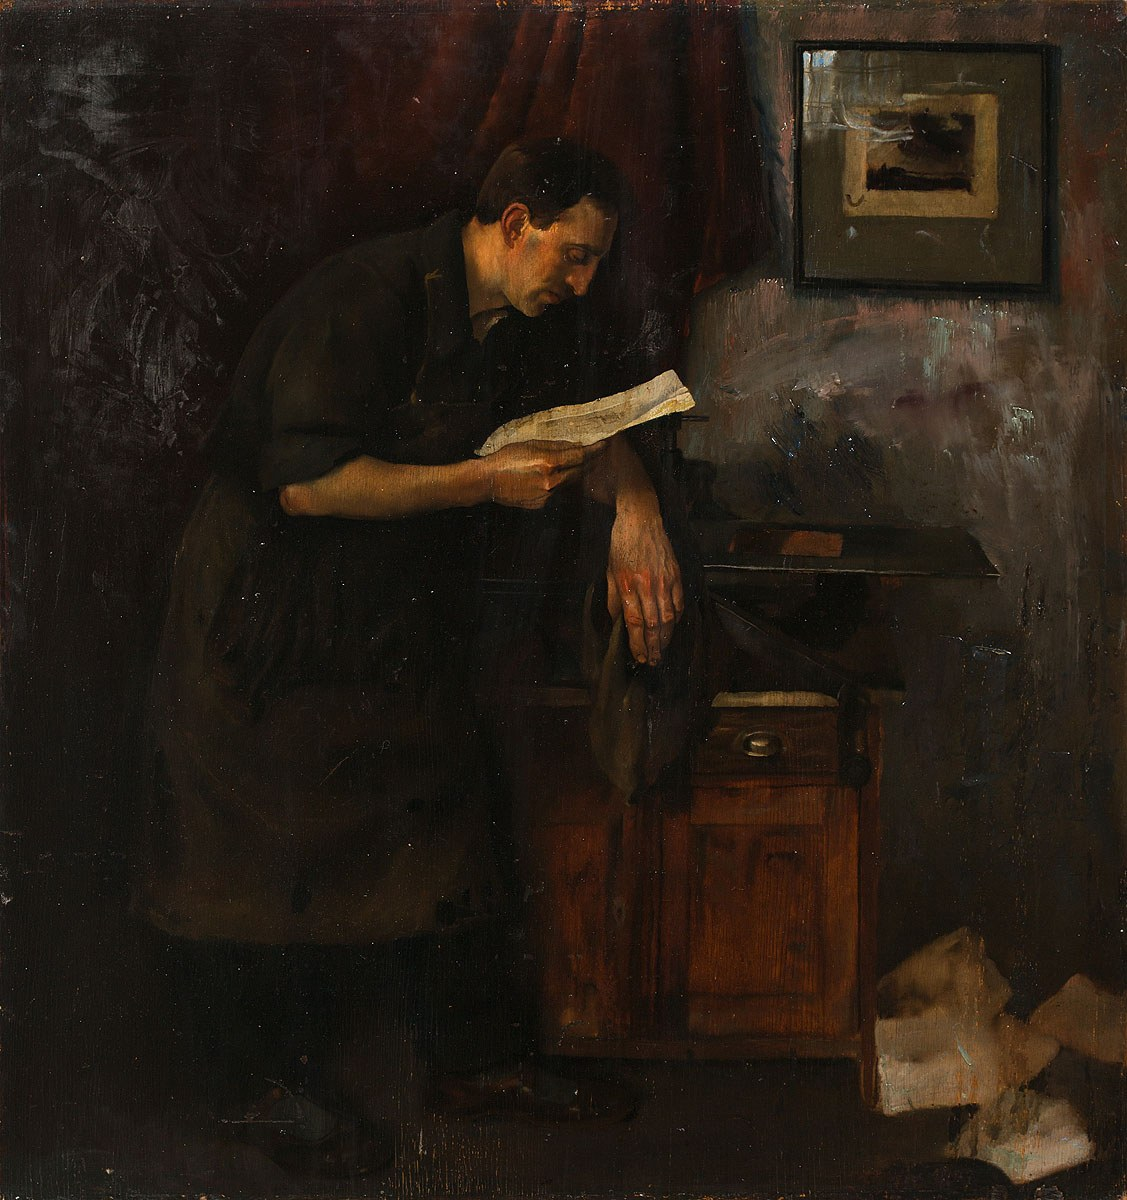 Edward Karniej, List, 1936